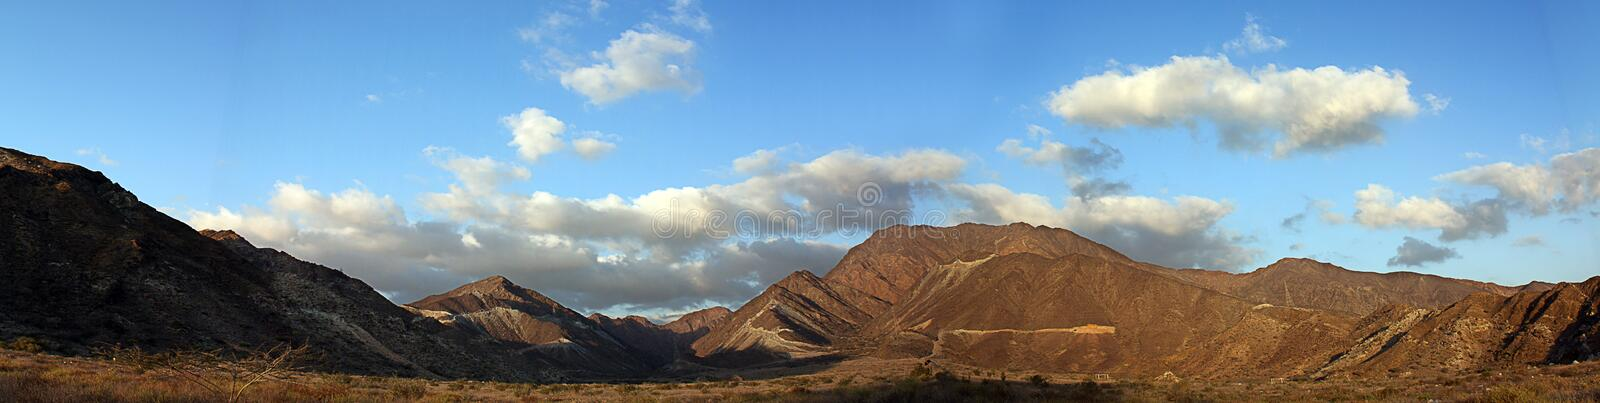 Panorama Hajjar mountain. emirate fujairah. United arab emirates royalty free stock image